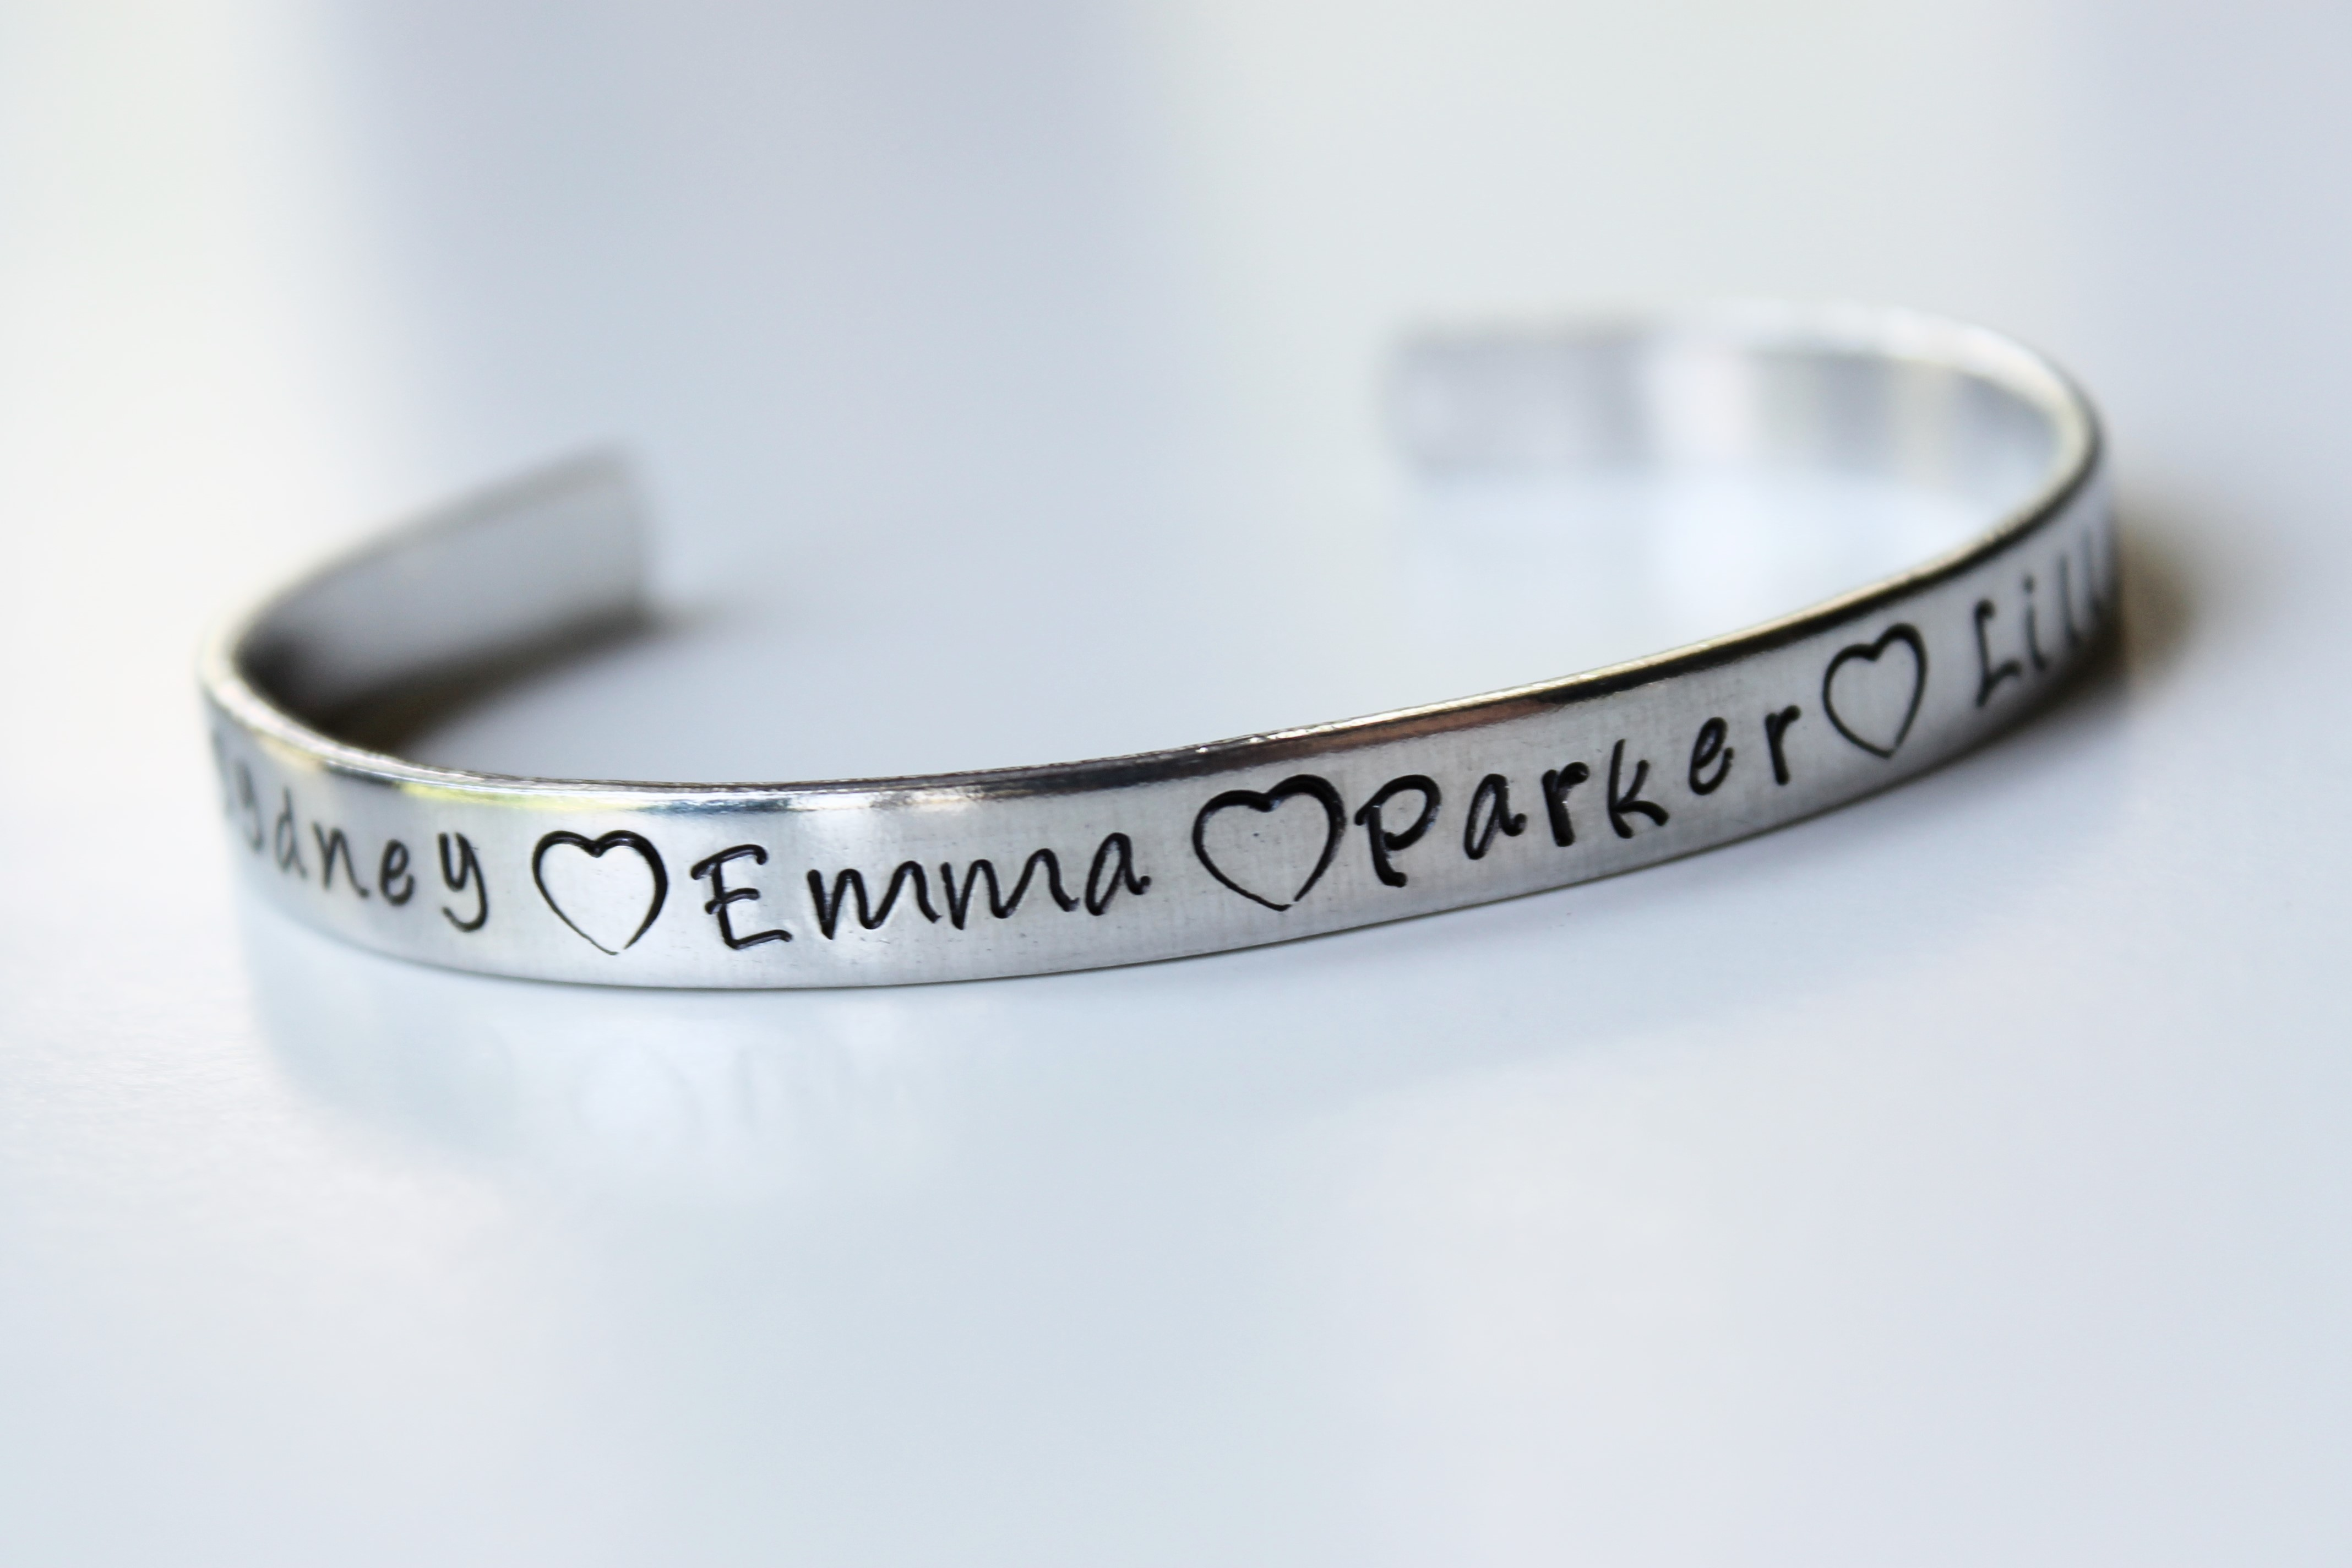 Personalized Names Bracelet Cuff Made Just For You Custom Bracelet Hand Stamped Cuff Bracelet